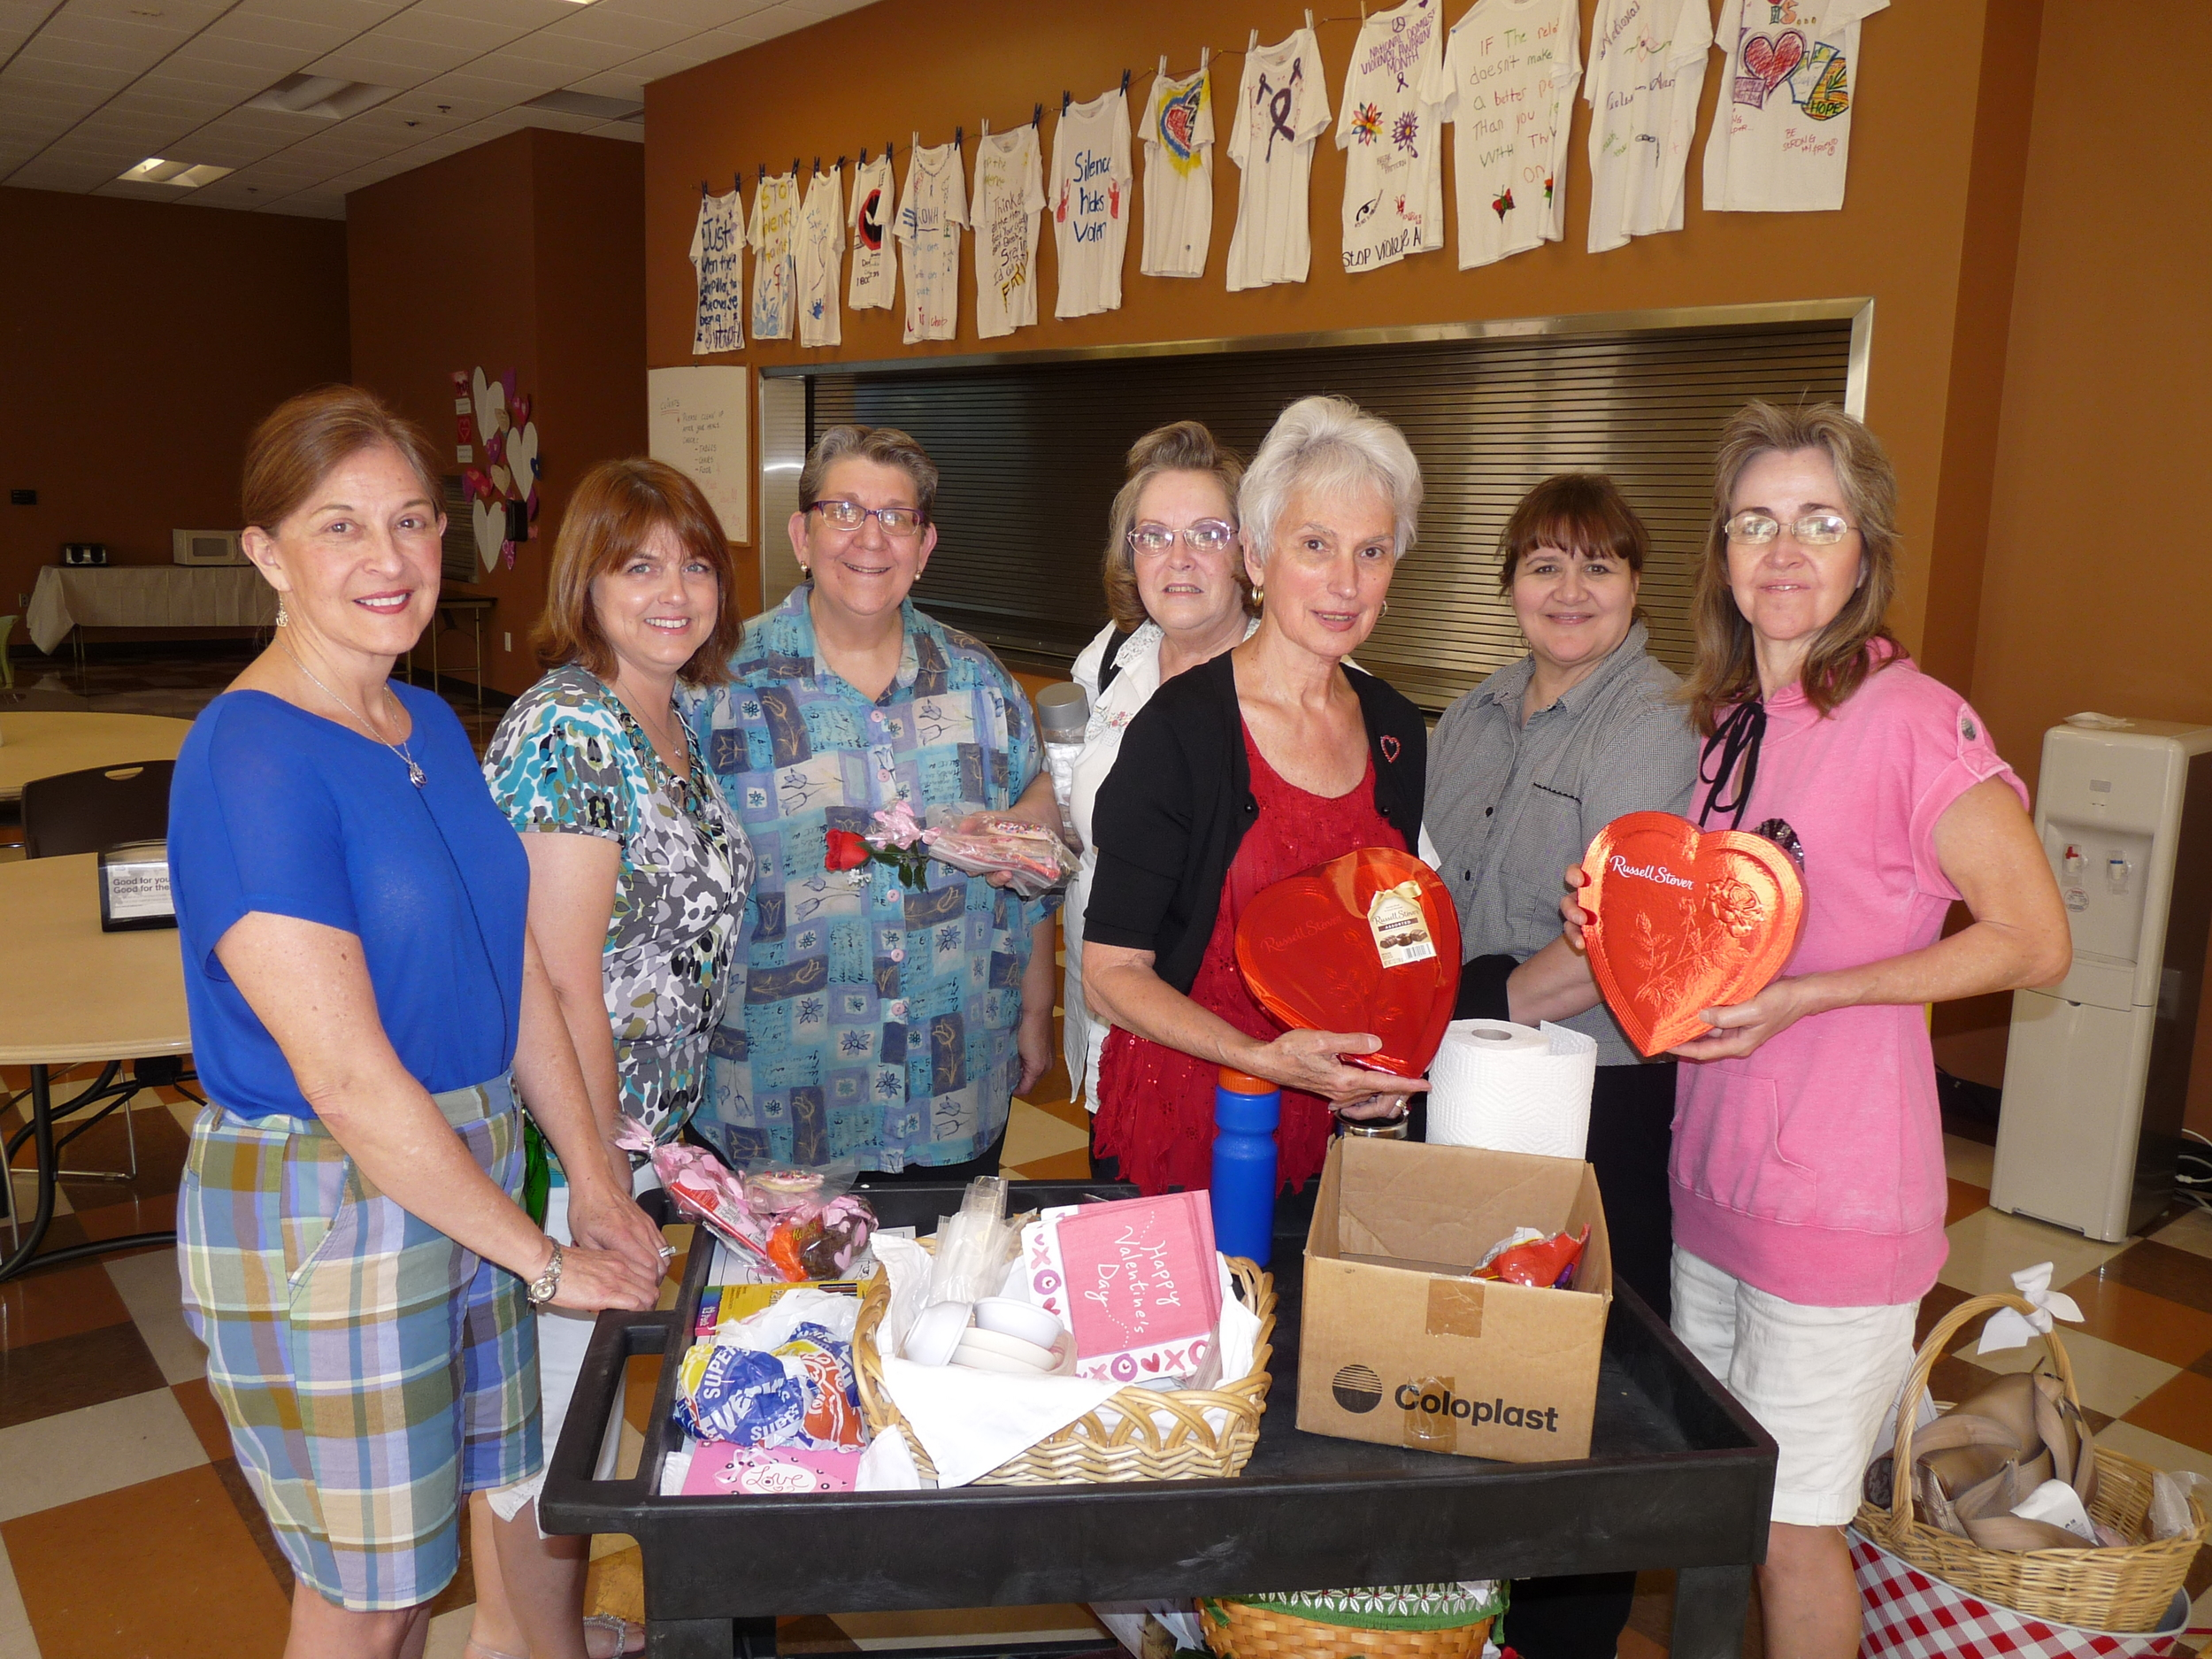 Kudos to the ladies- Peg Boyle, Michele Chester, Joanne Griffis,Maria Hueblin, Emily Hoggatt, Margaret Warden and Lori Wiggert, who showed the 'greater love' by taking time from their hectic Valentine's schedule for the afternoon of caring for 'the least of these by brethren'---- their love has caught fire as they are returning in May for another event at the Salvation Army shelter.